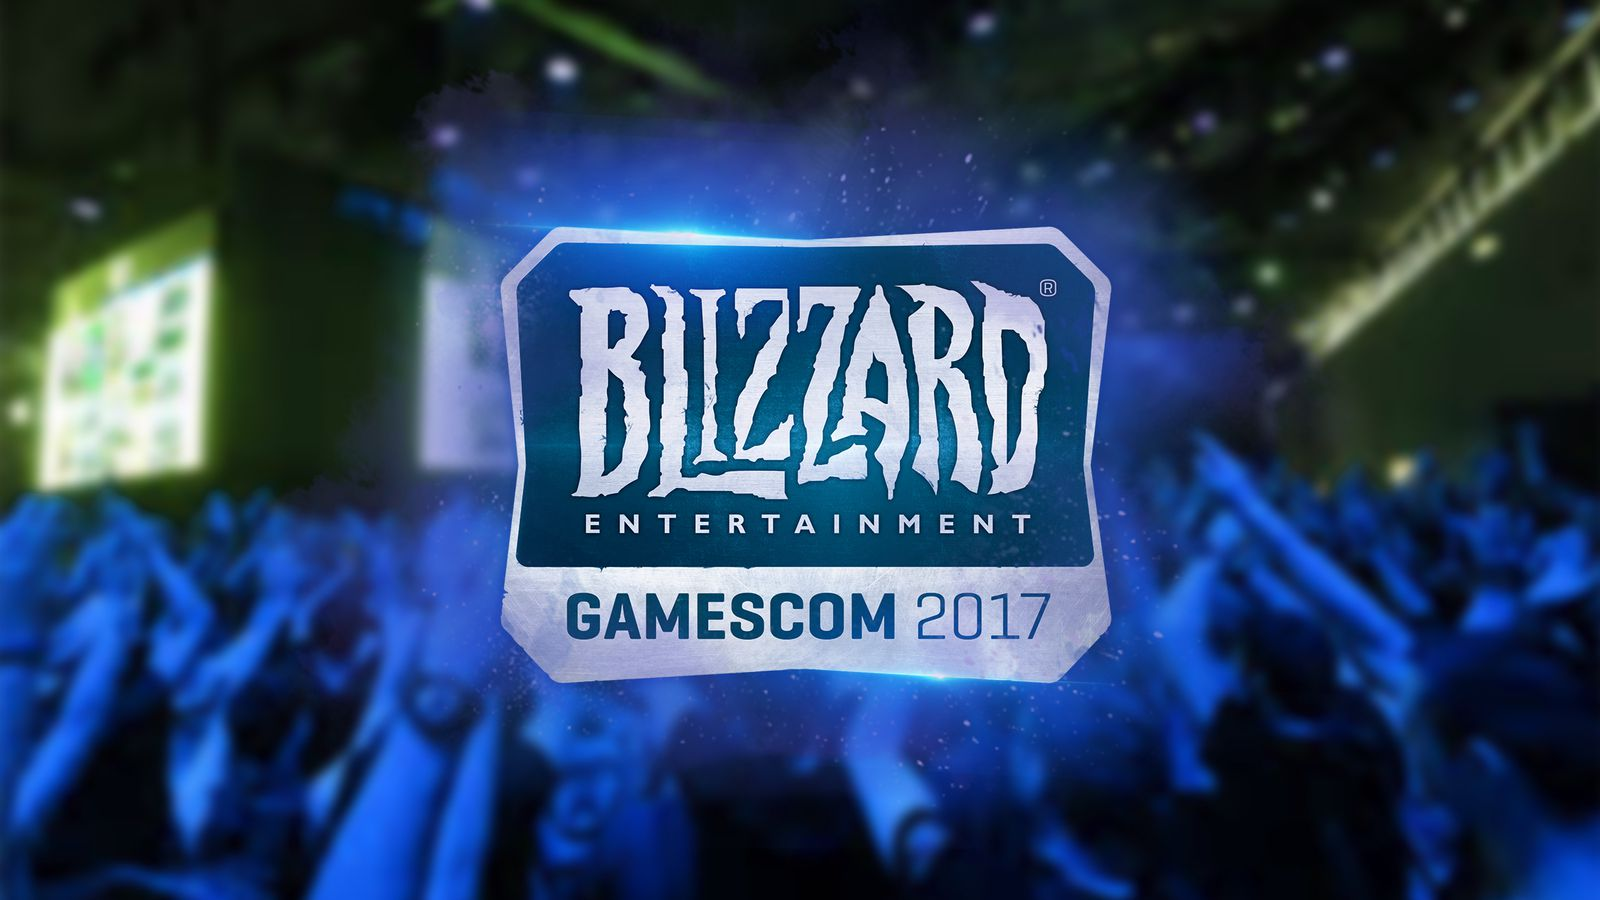 Blizzard Reveal Ceremony at Gamescom: Watch the livestream here